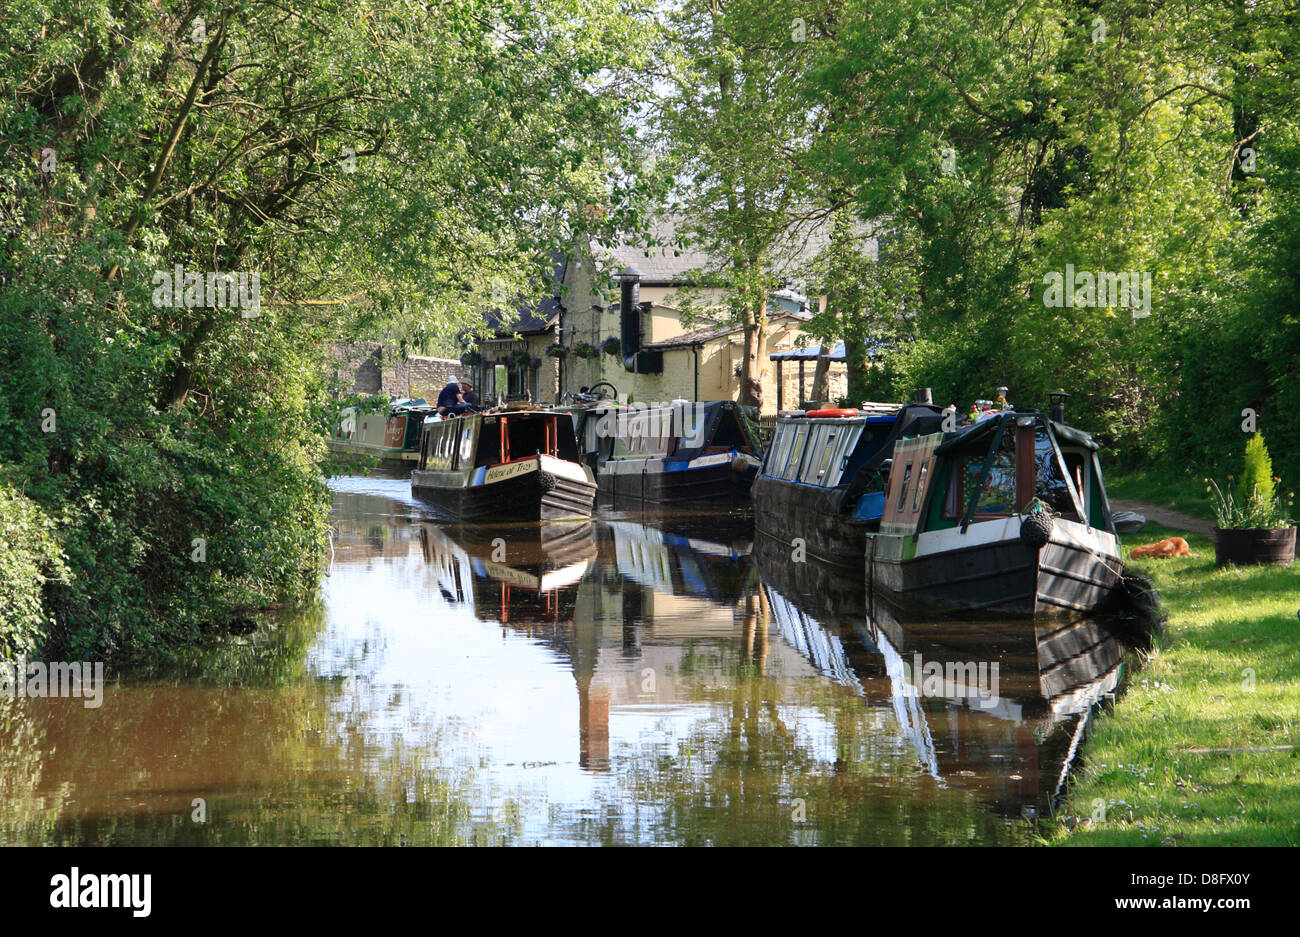 Narrowboats on the Oxford Canal near Thrupp in Oxfordshire - Stock Image